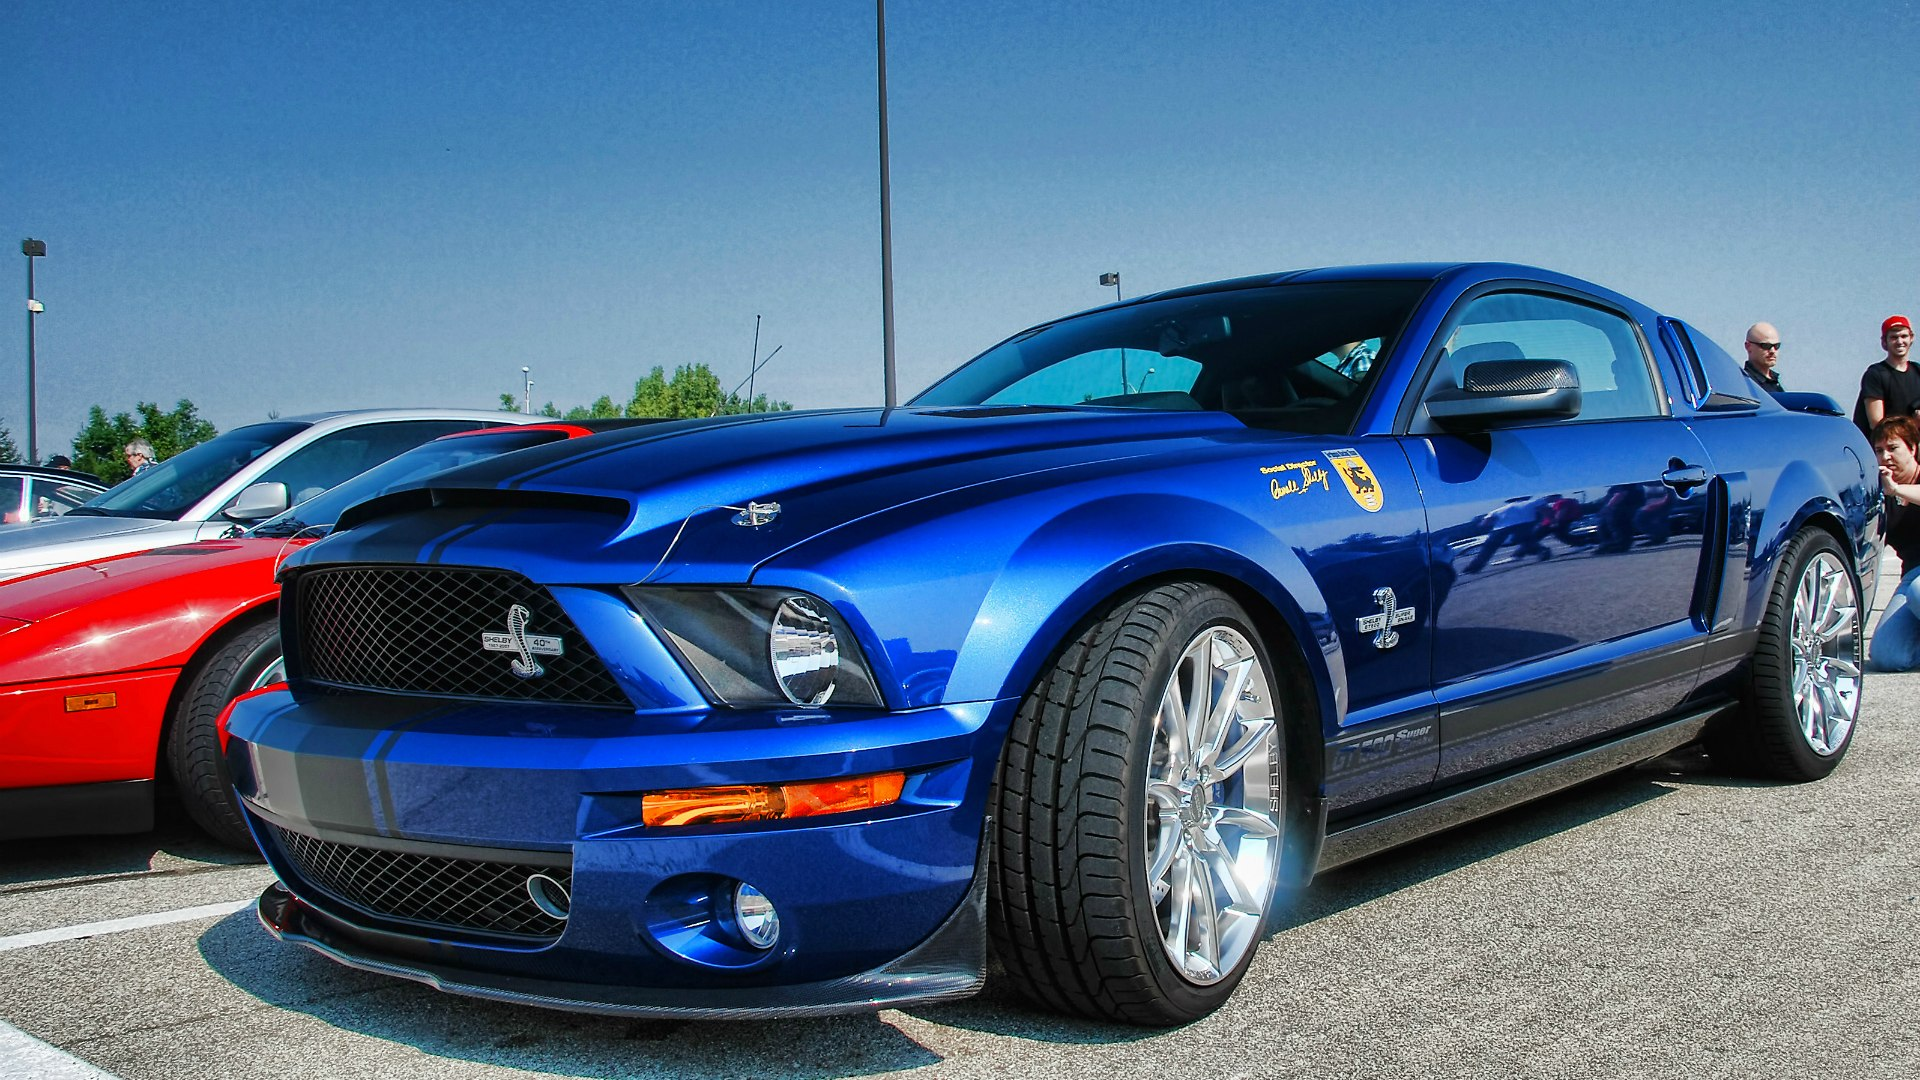 Зеркальный Ford Mustang Shelby GT500 Super Snake